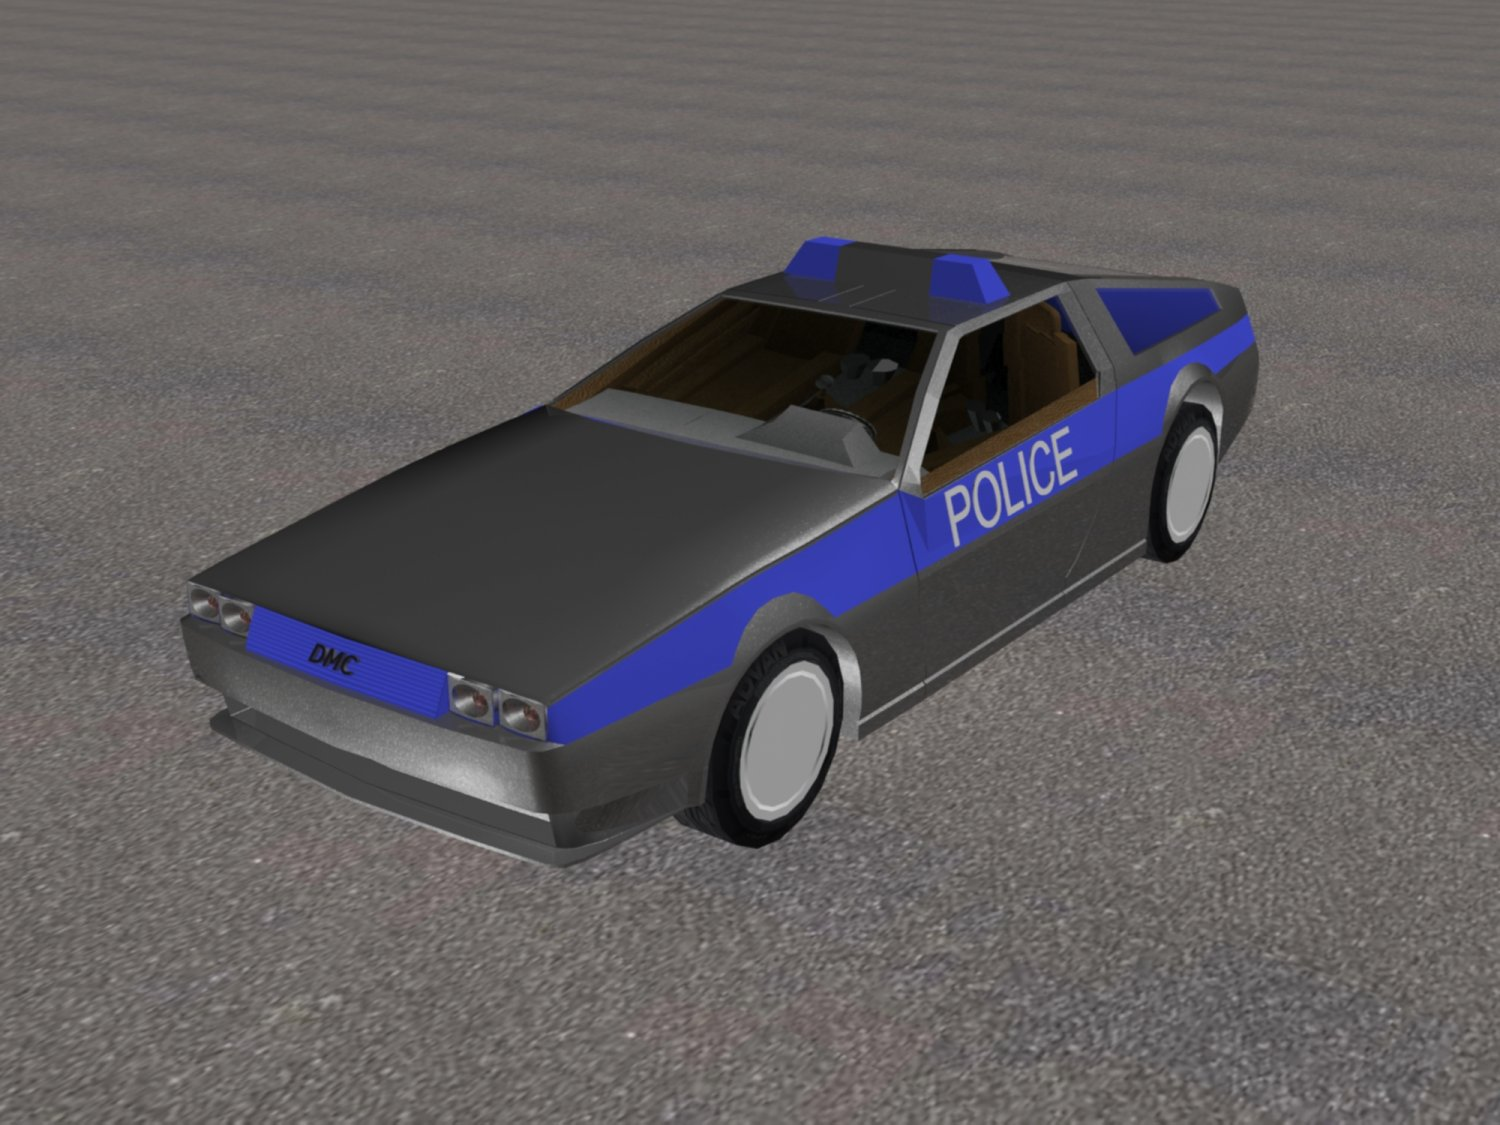 Delorean Dmc 12 Police Free 3d Model In Royal Cars 3dexport